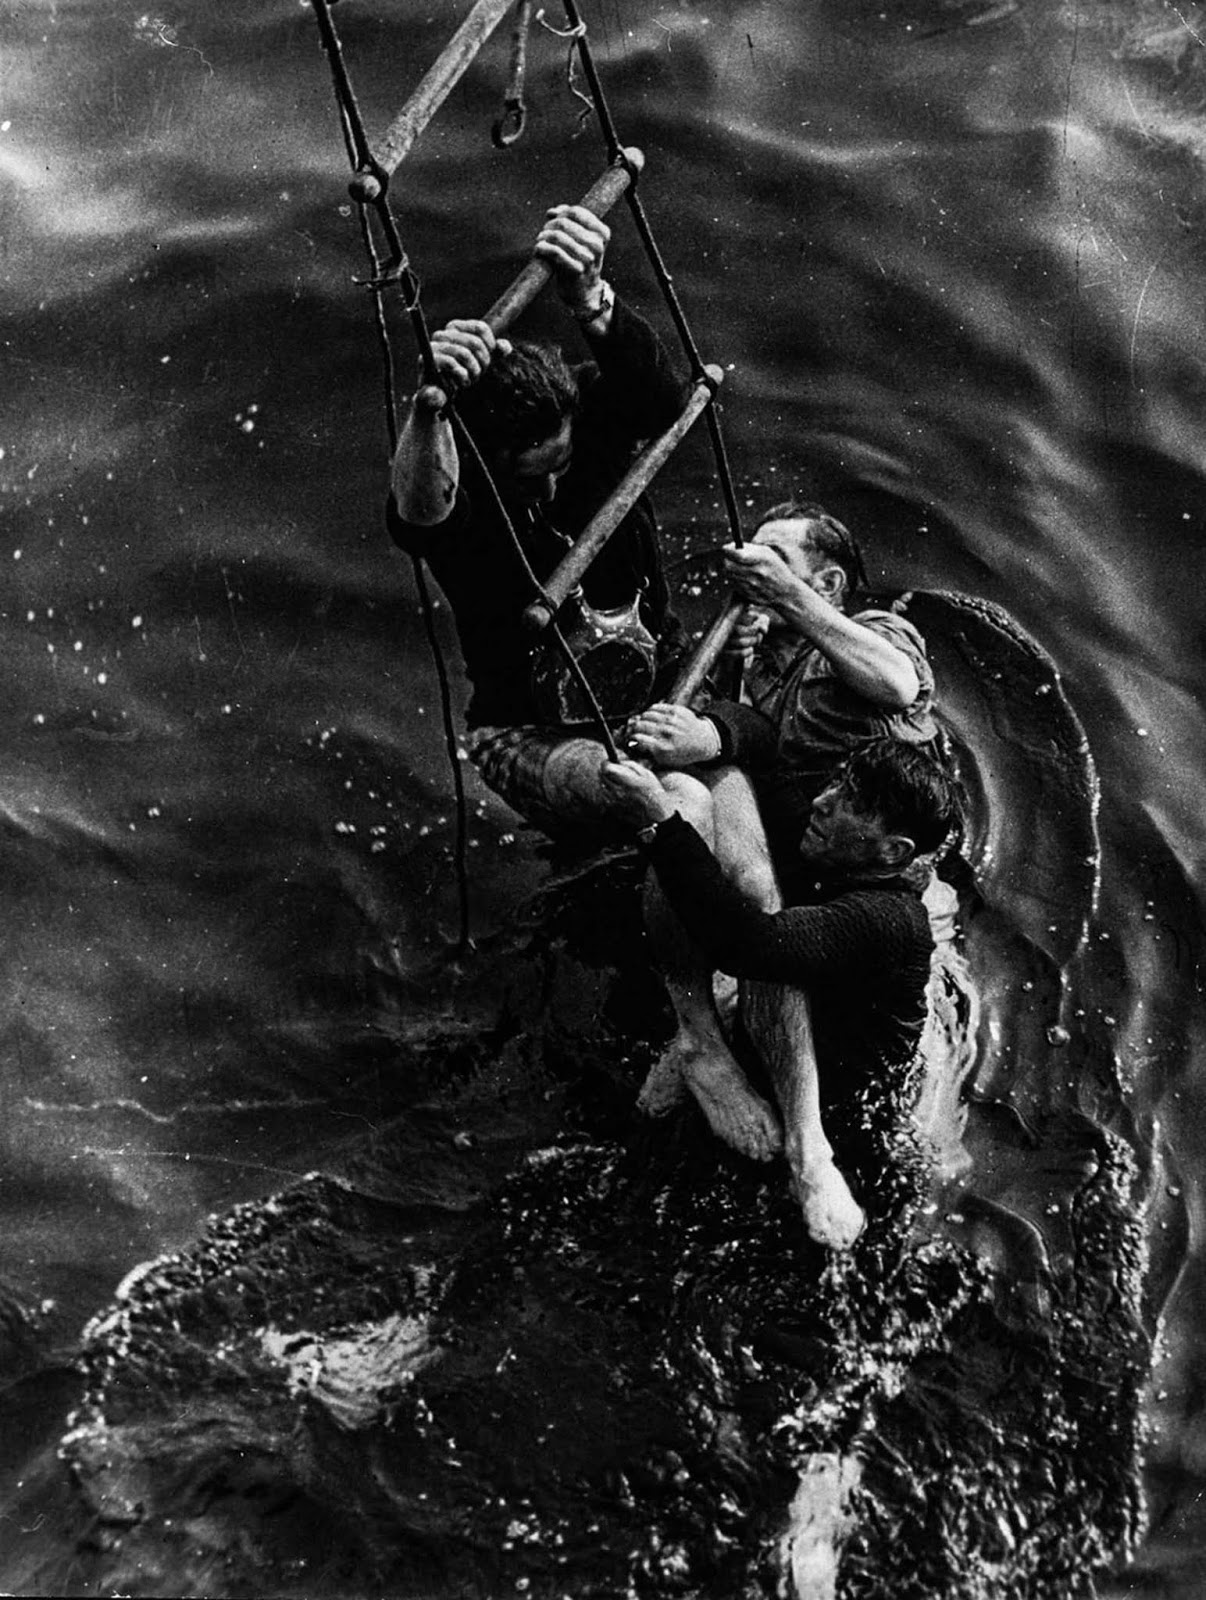 Allied soldiers climb aboard a ship during the evacuation of Dunkirk.